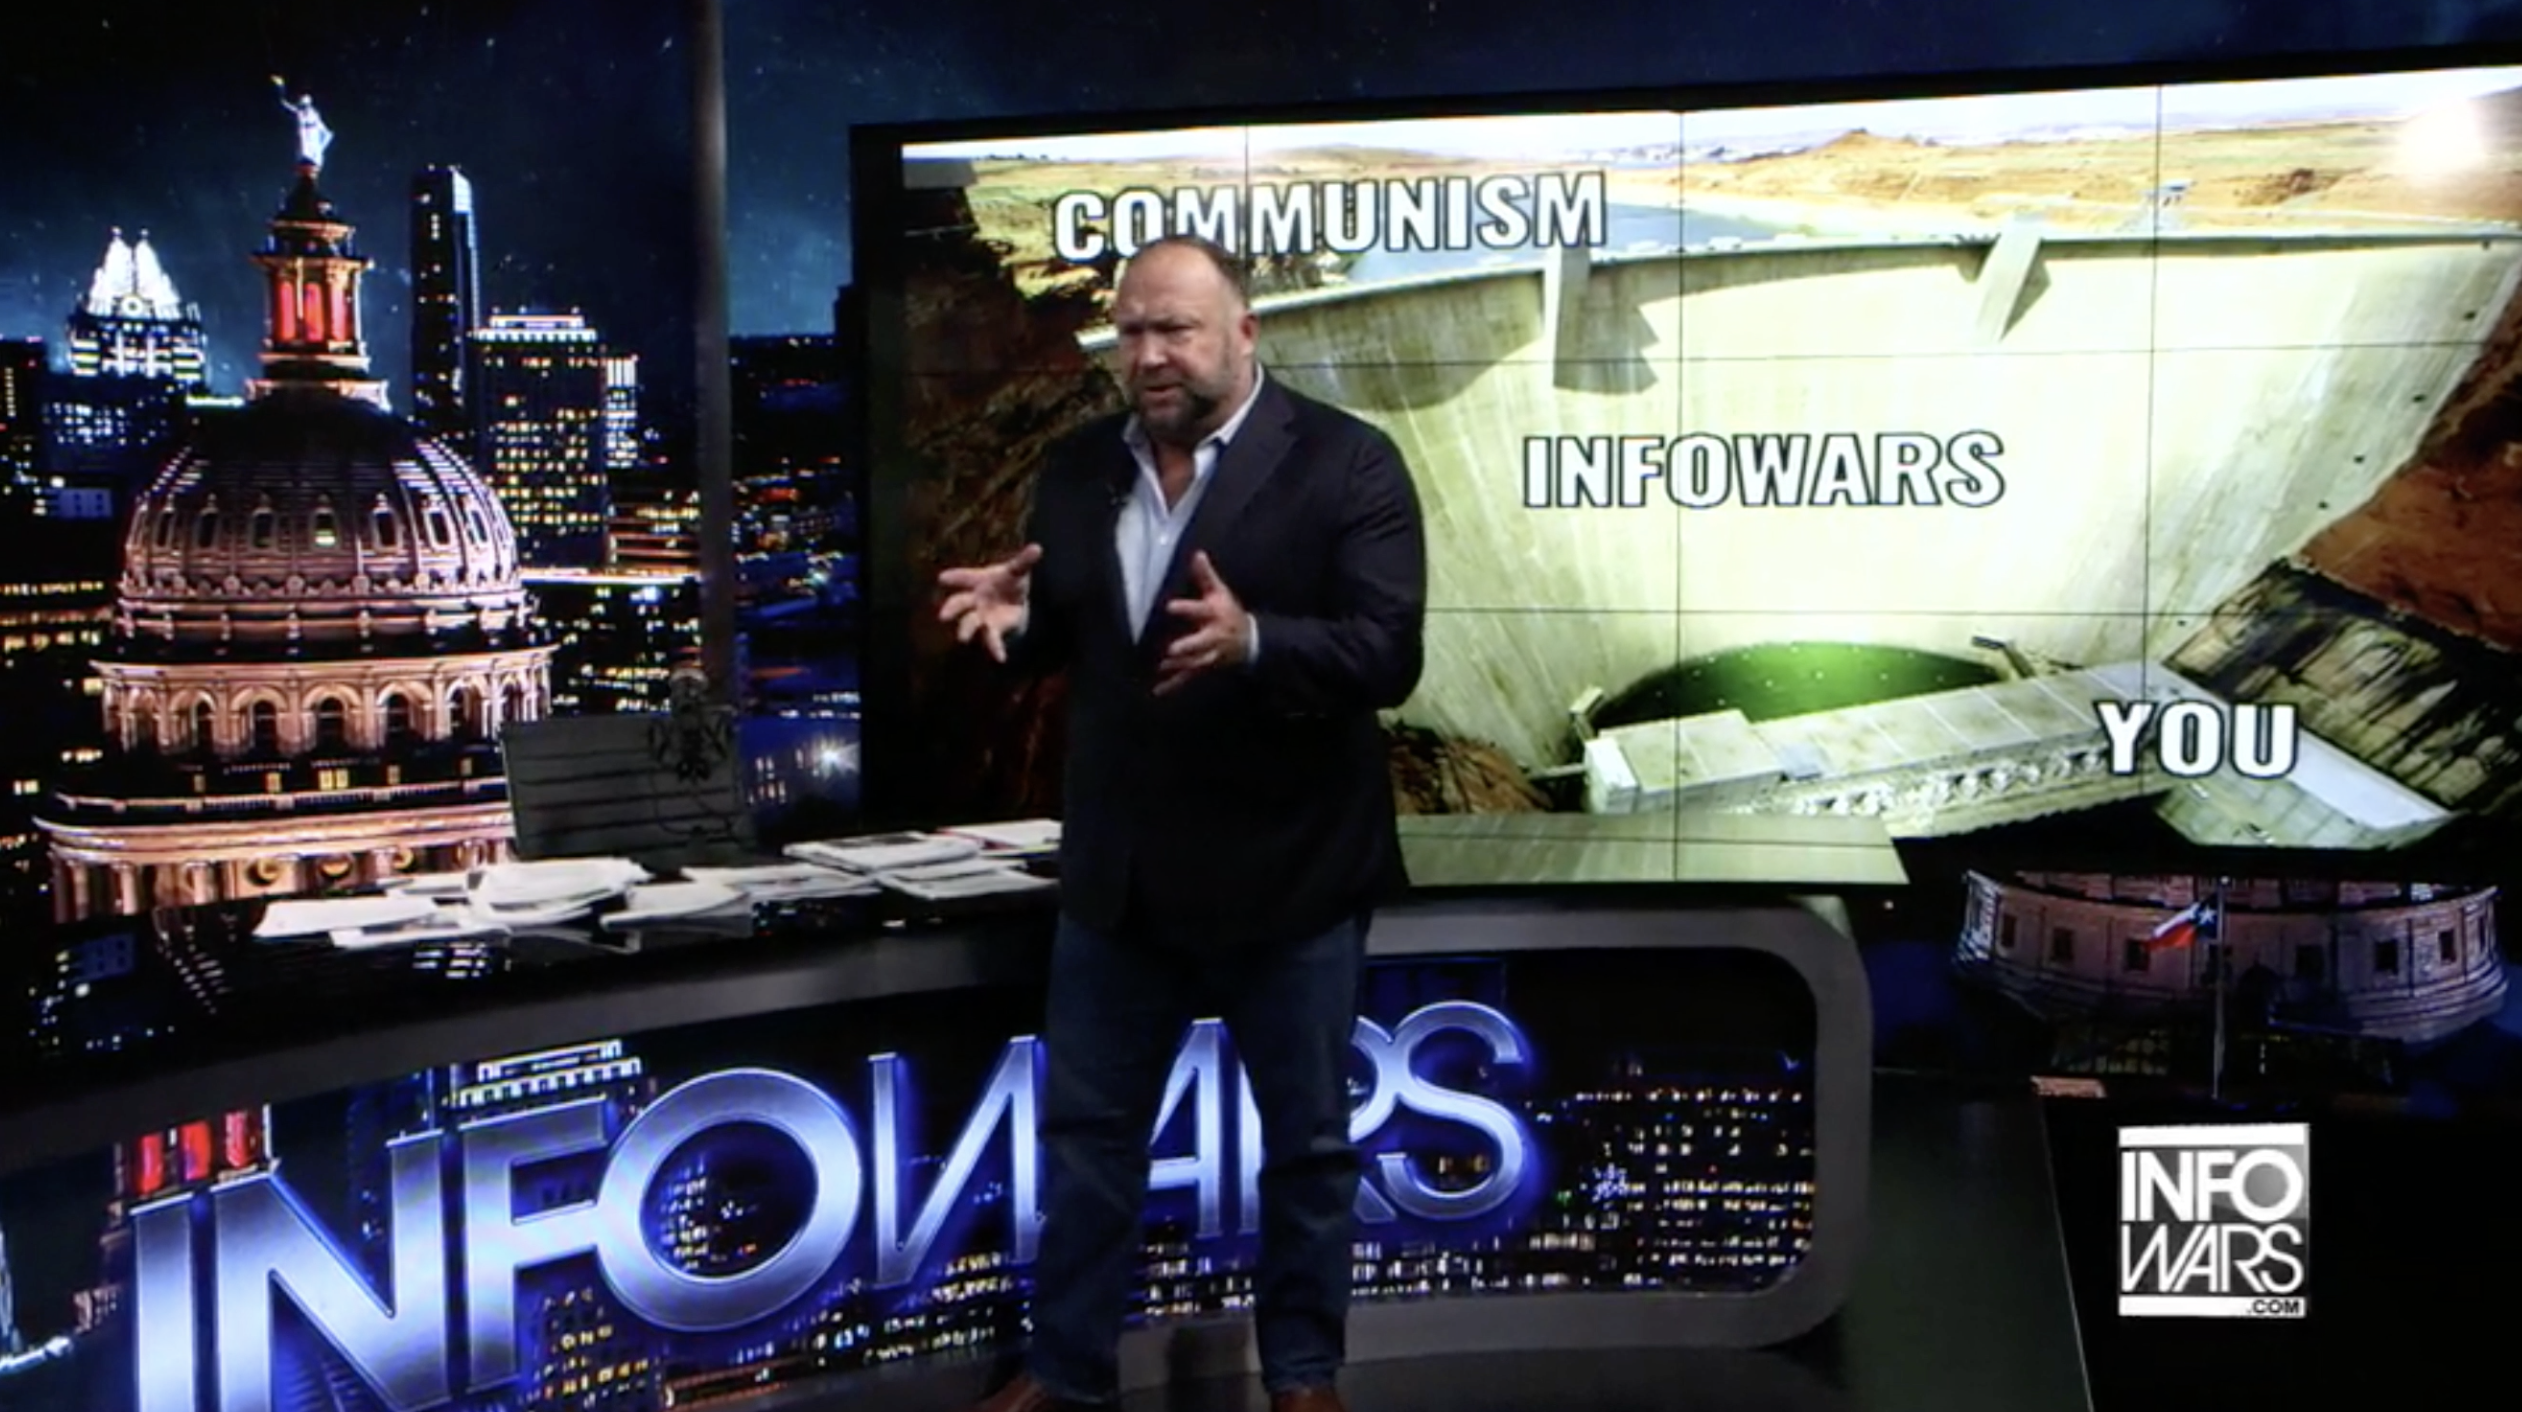 Alex Jones Infowars Studio Communism EXZM September 3rd 2020